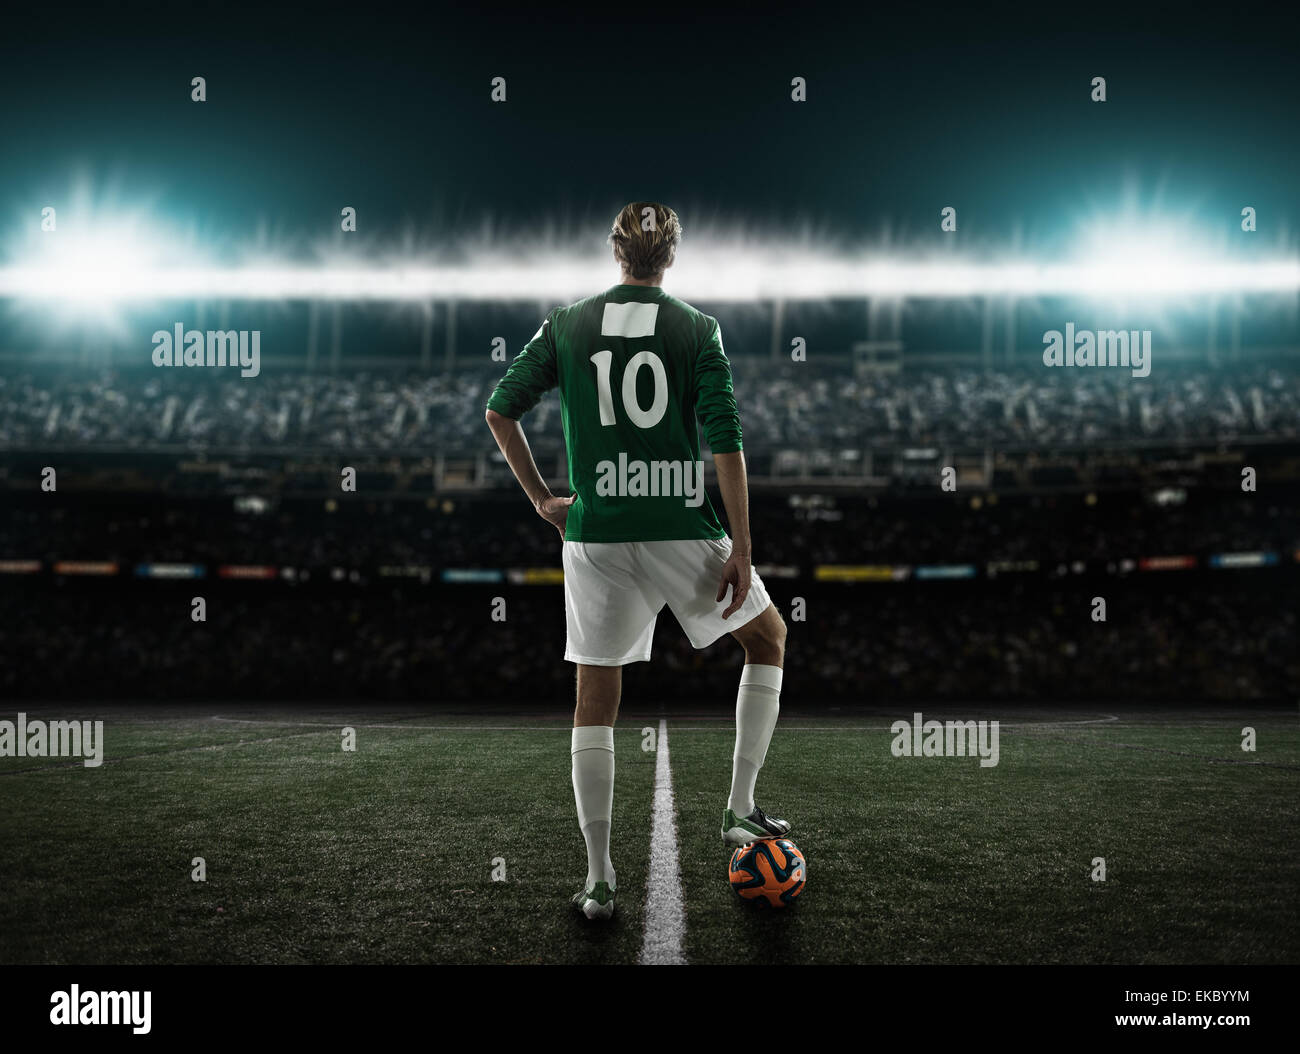 Footballer waiting to kick off - Stock Image